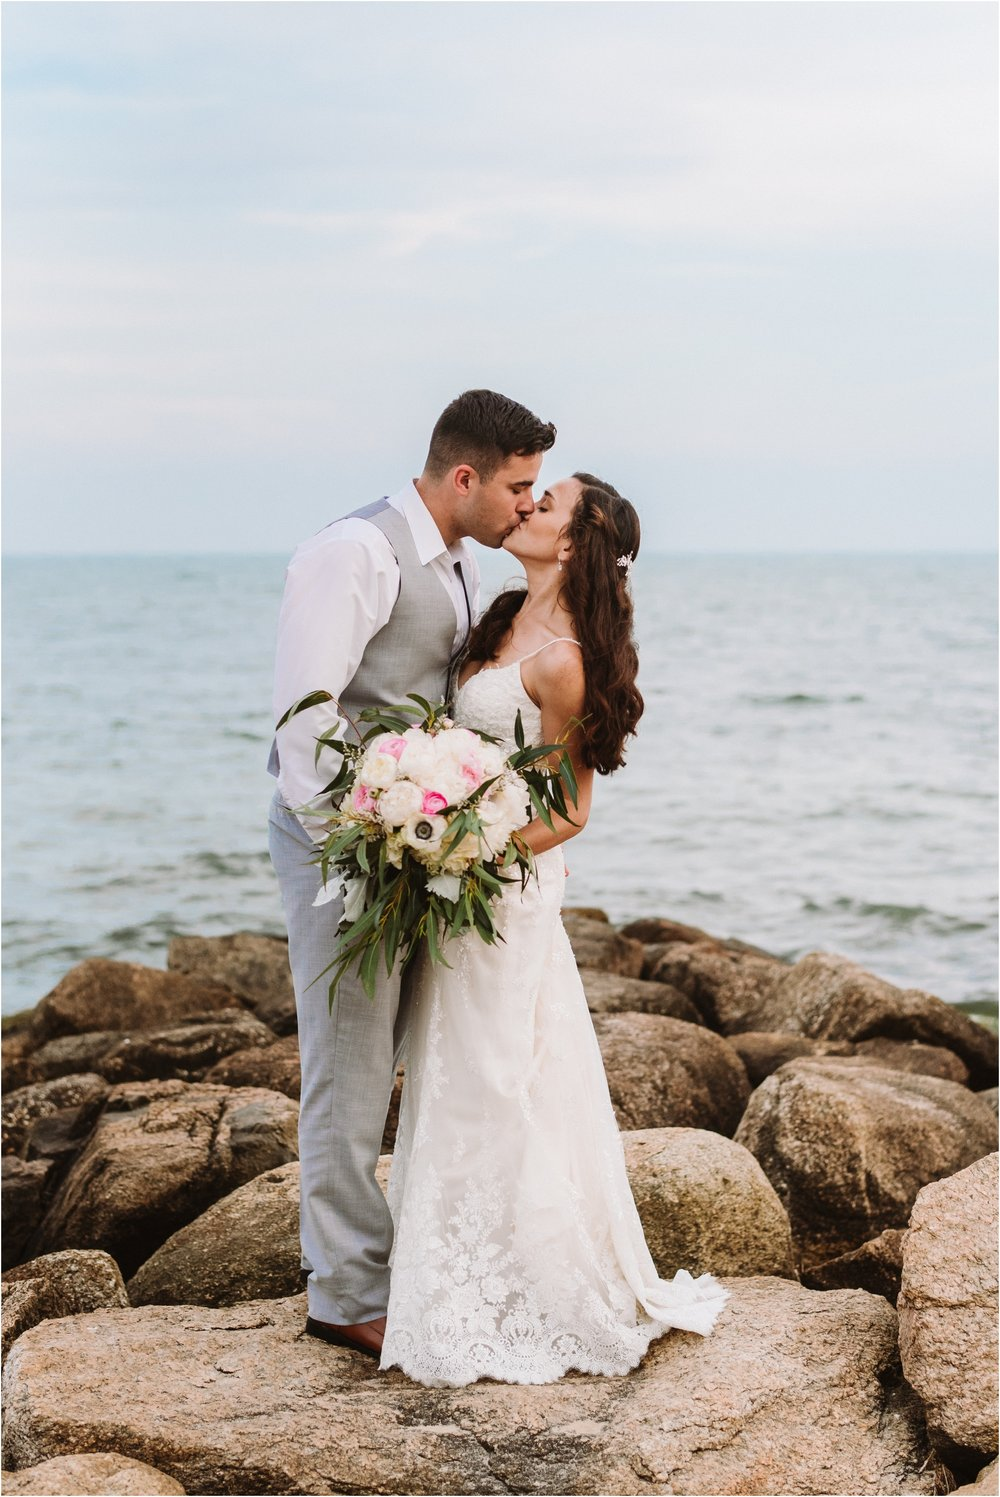 Sarah & Sam Pelham House Cape Cod Wedding Photographer-175.jpg